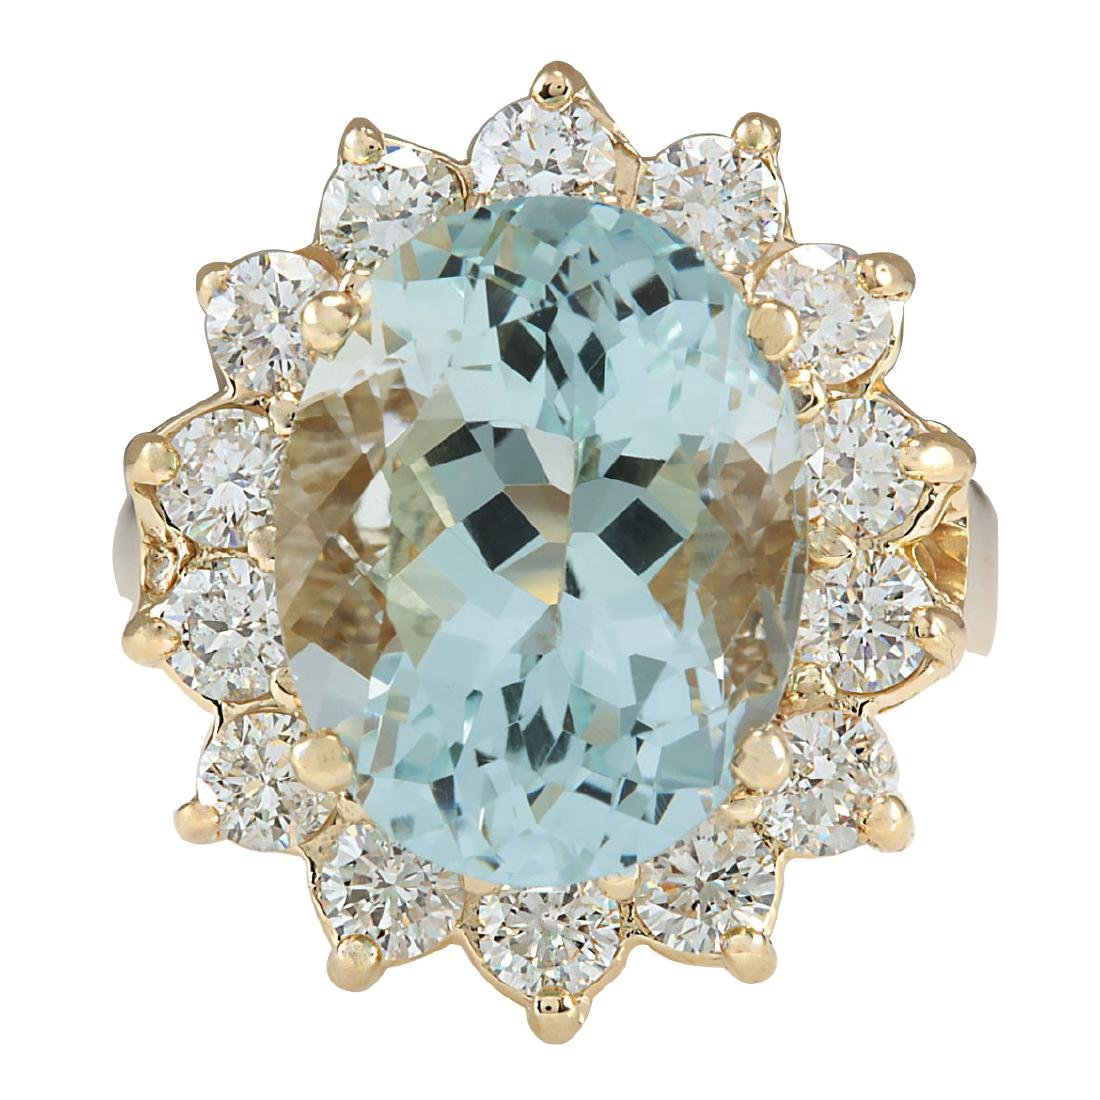 10.48Ct Natural Aquamarine And Diamond Ring In18K Solid